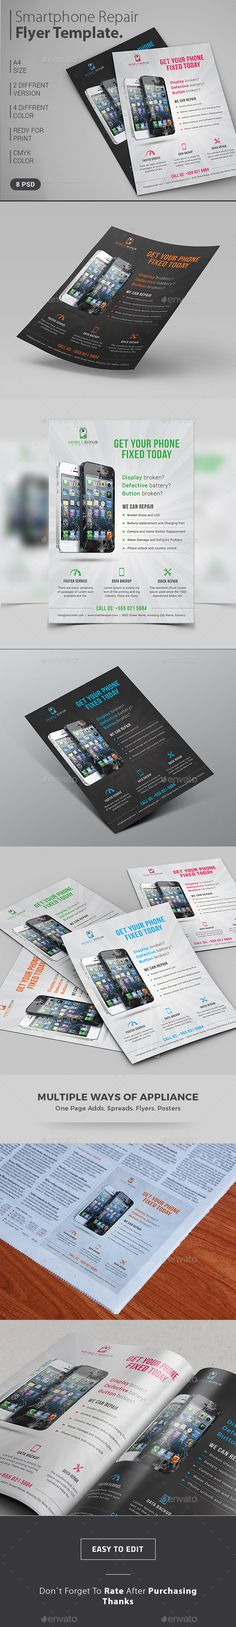 Smart Phone Repair Service flyers is the ideal design for promoting phone repair service business.  http://graphicriver.net/item/smartphone-repair-service-flyer-magazine-ad/15134375?ref=themedevisers